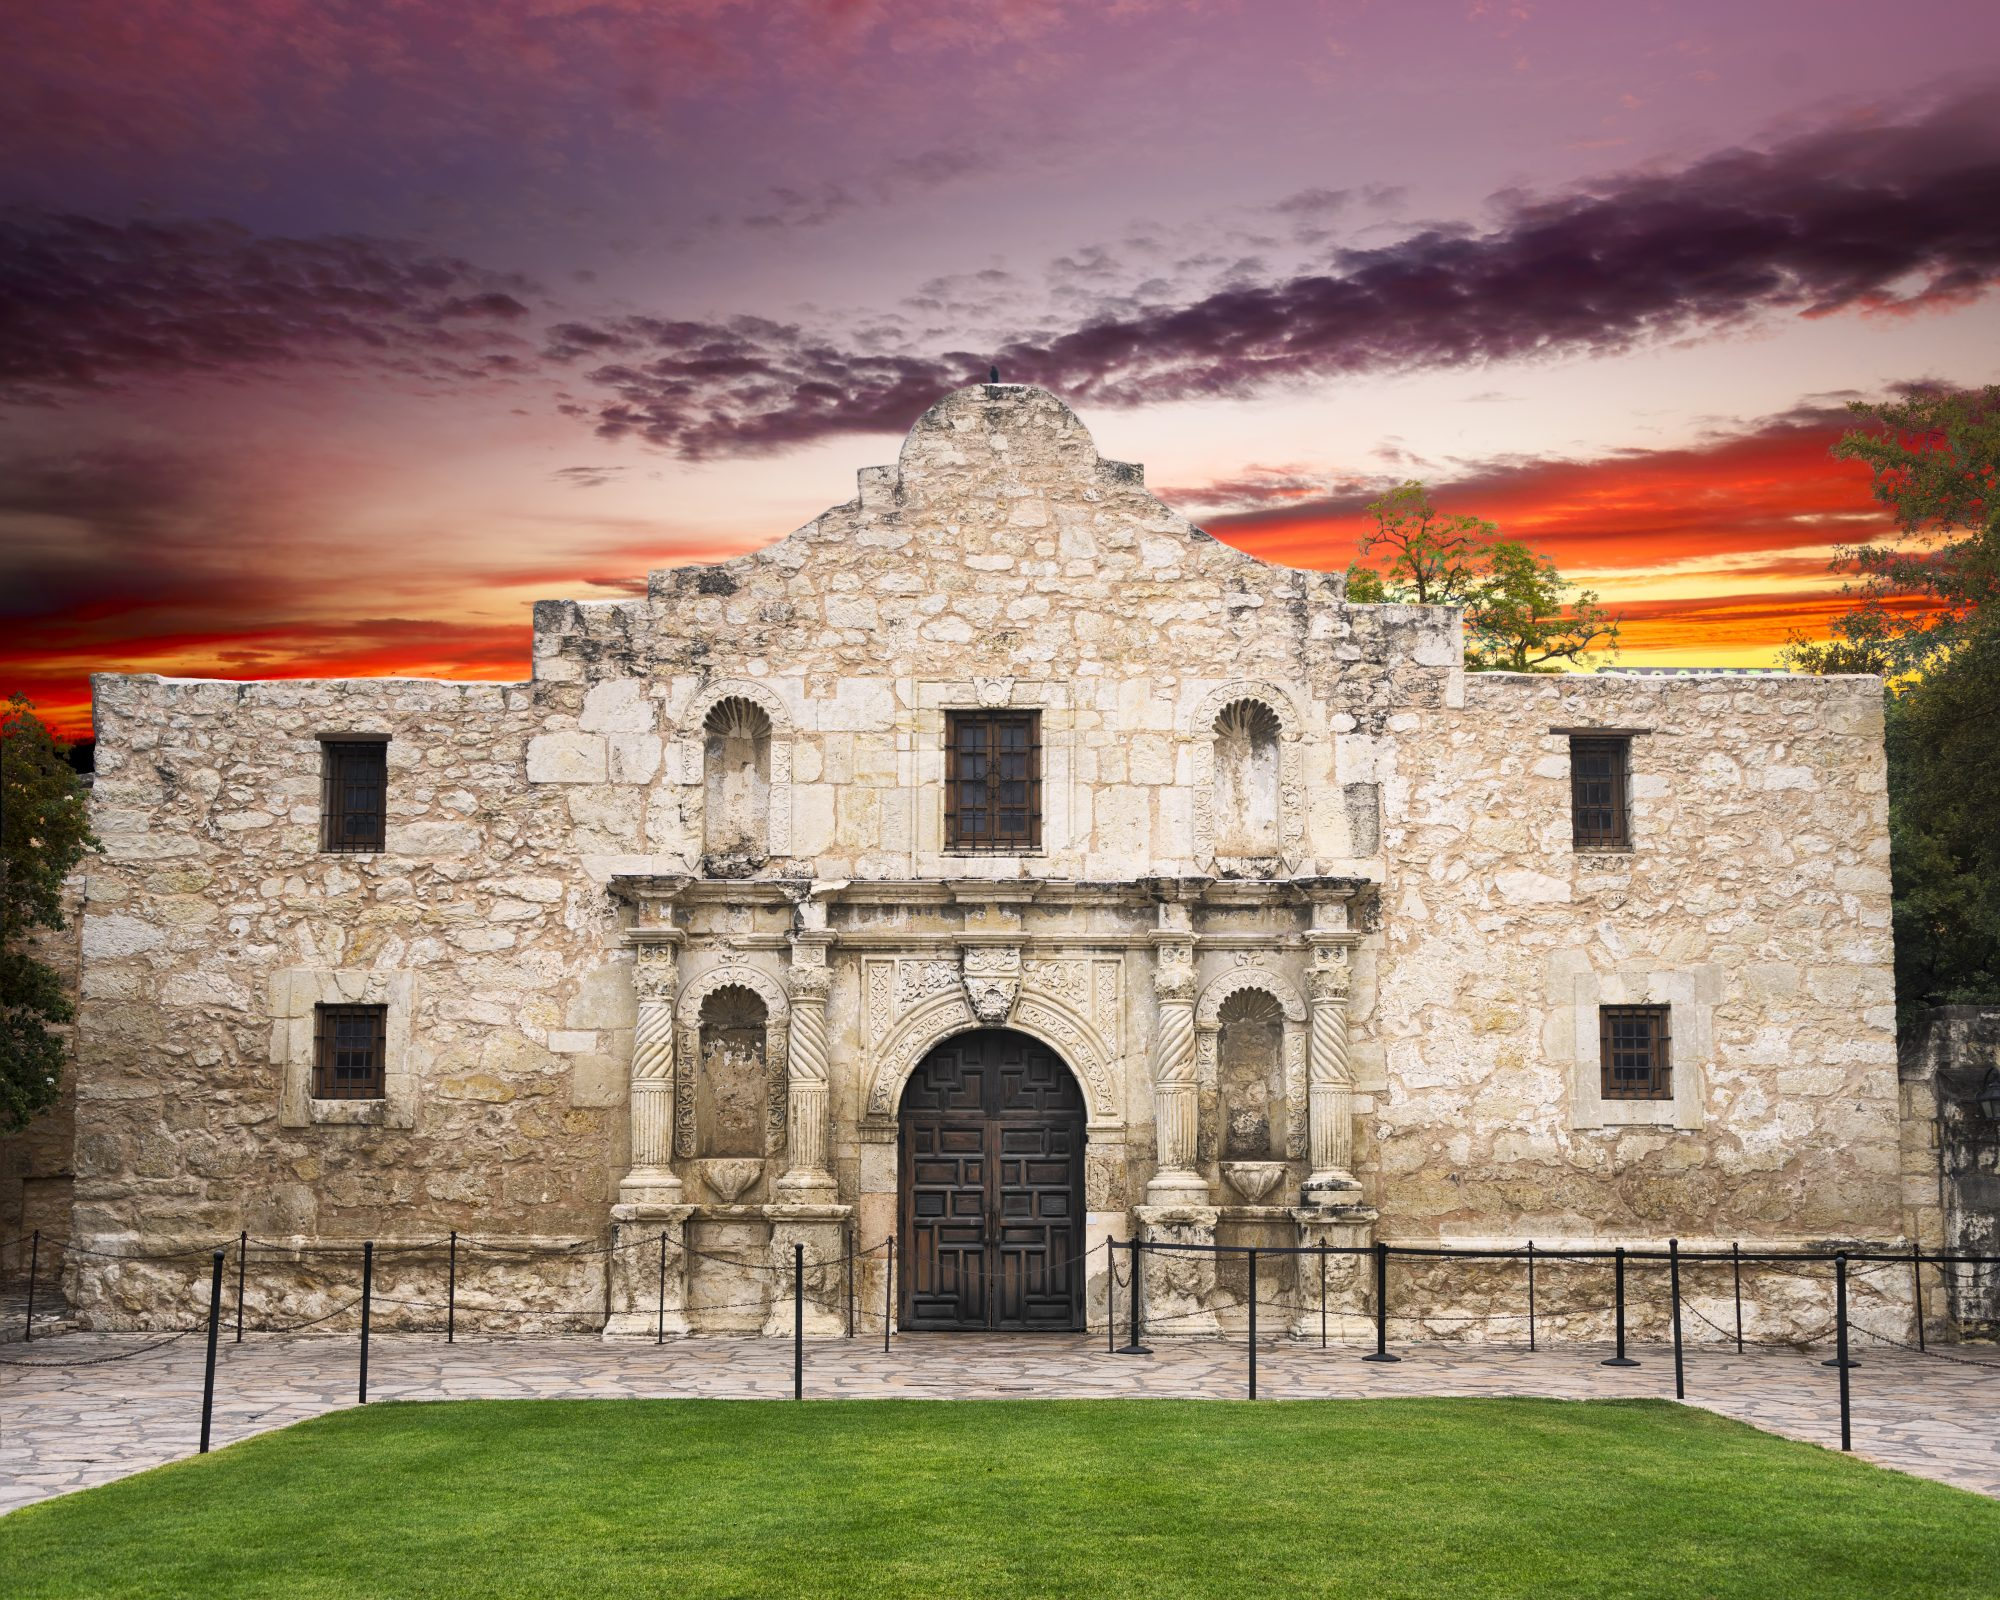 San Antonio, Texas- Alamo City